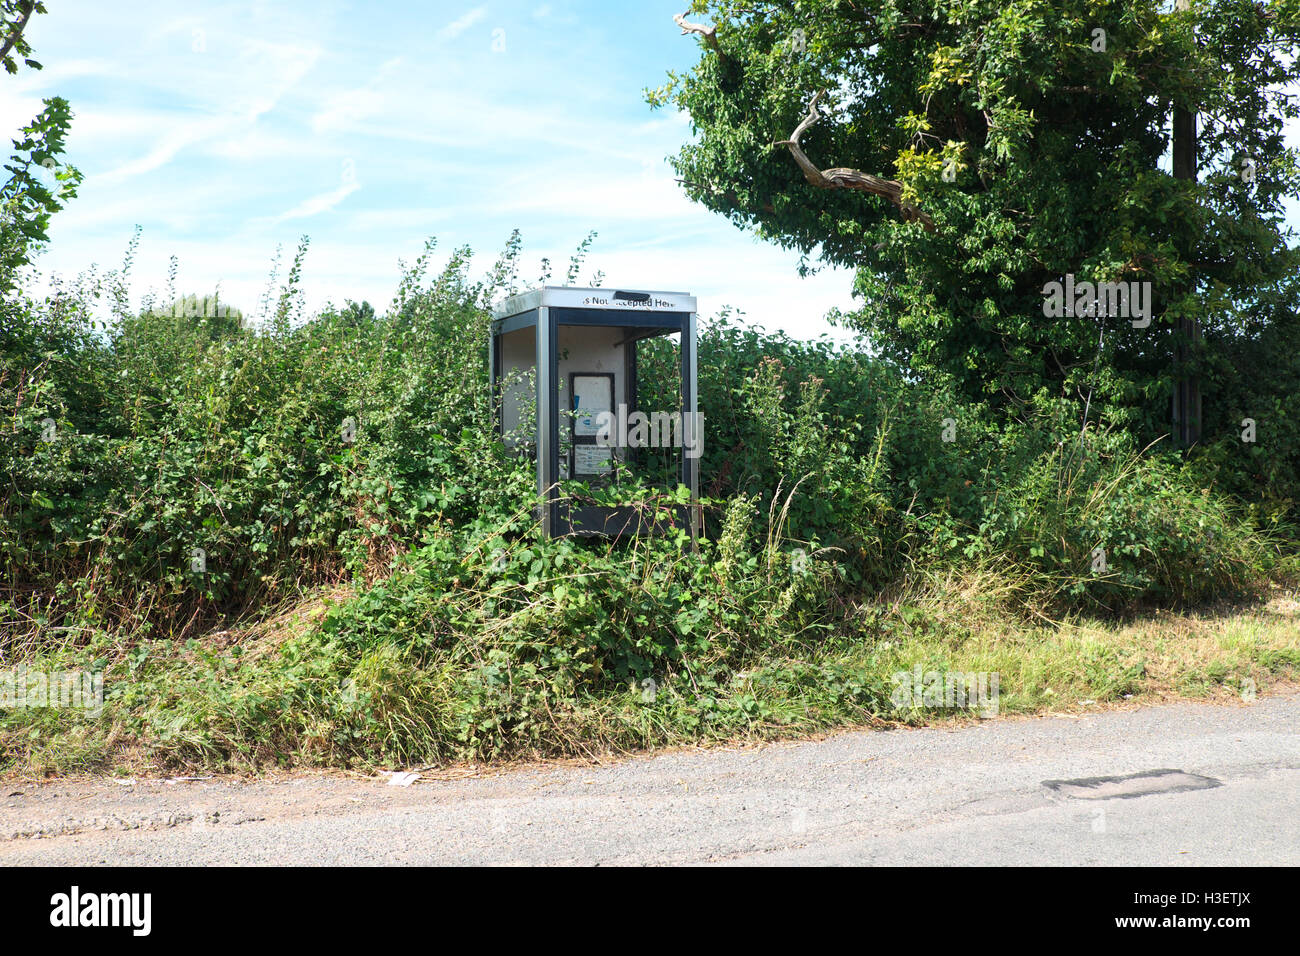 British Telecom BT neglected public phone box smashed glass and overgrown with brambles BT rural phone service Herefordshire - Stock Image